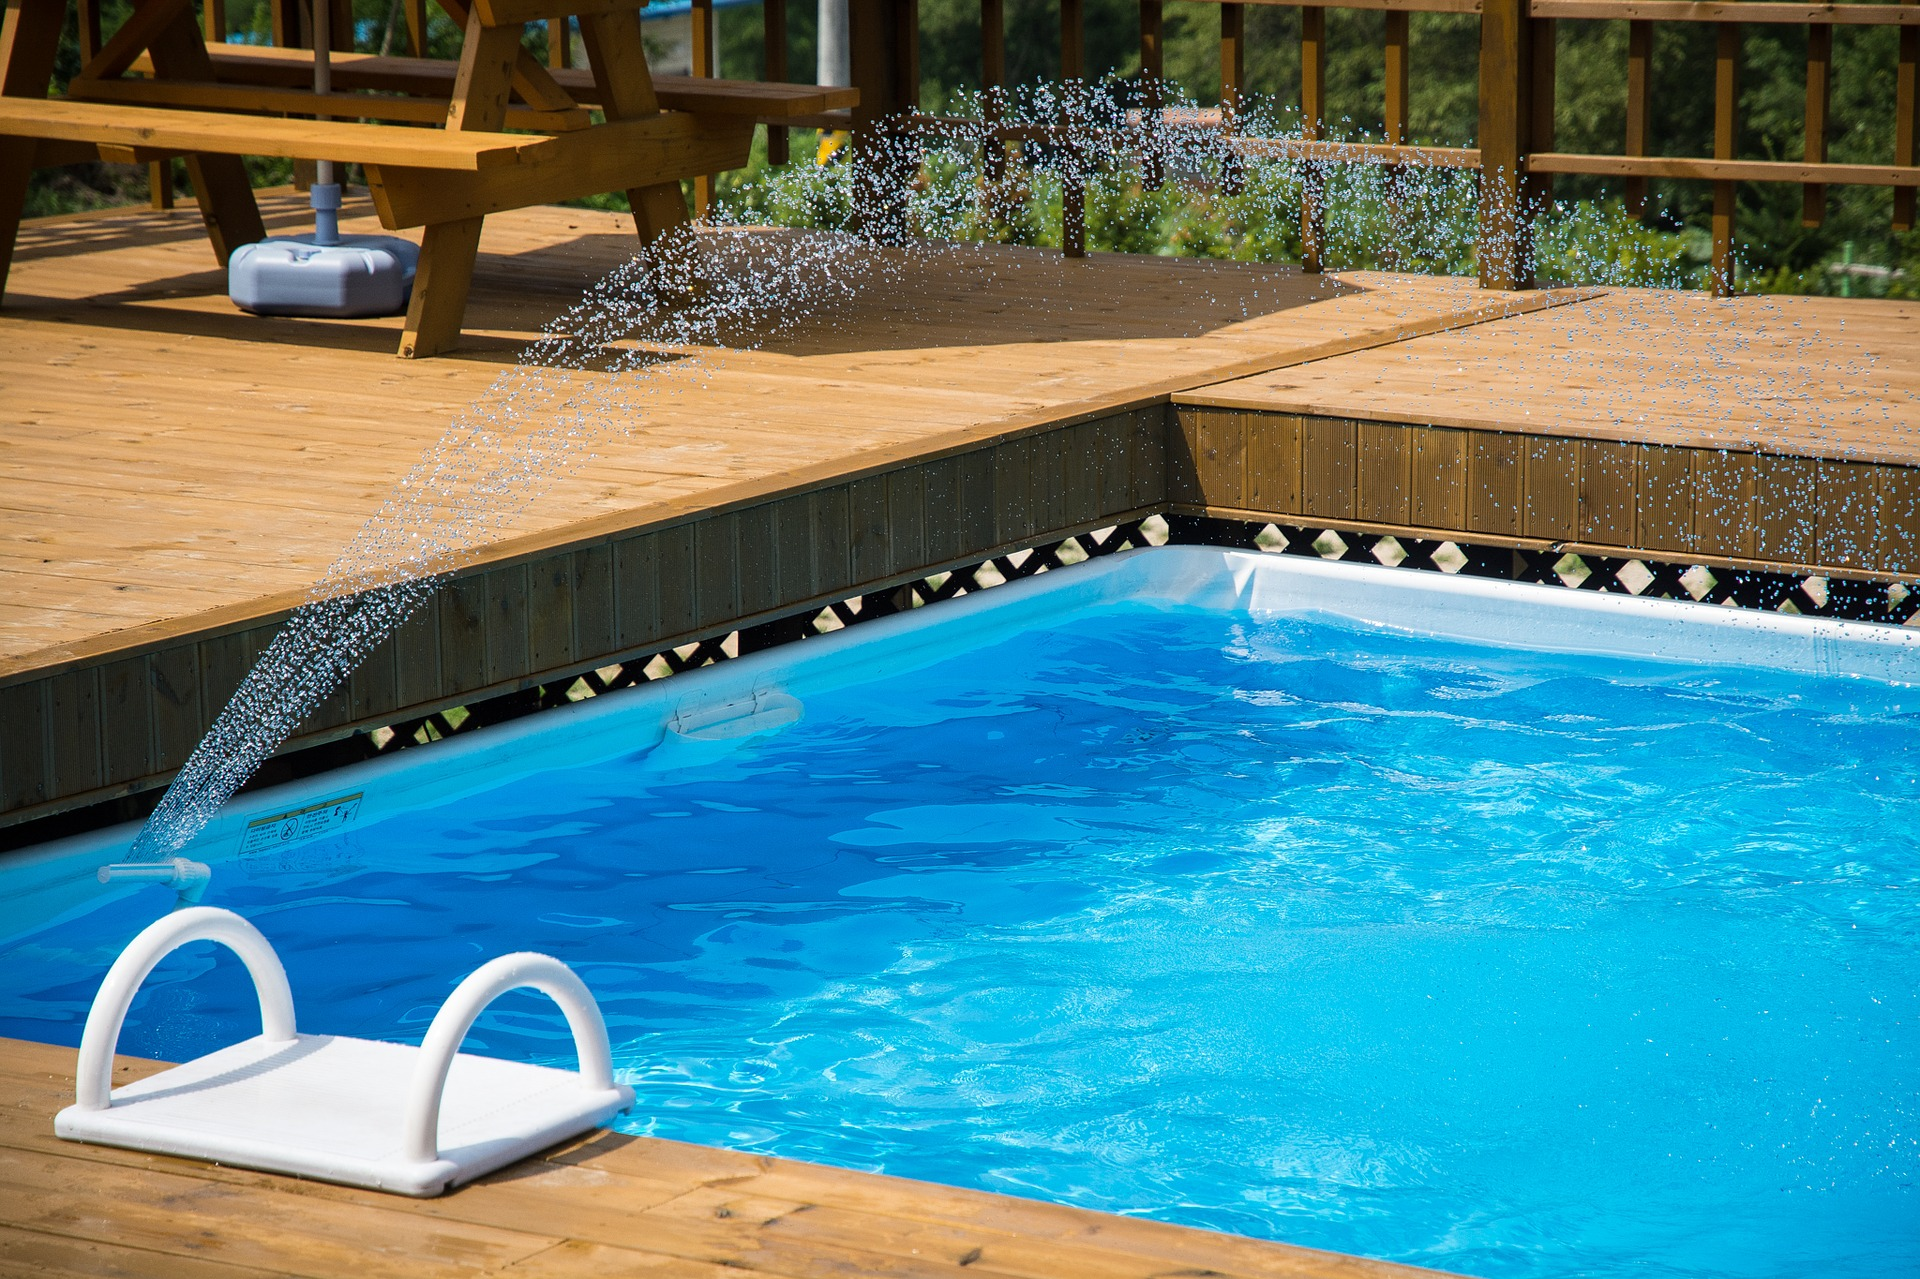 How to Remove Black Algae from Pool